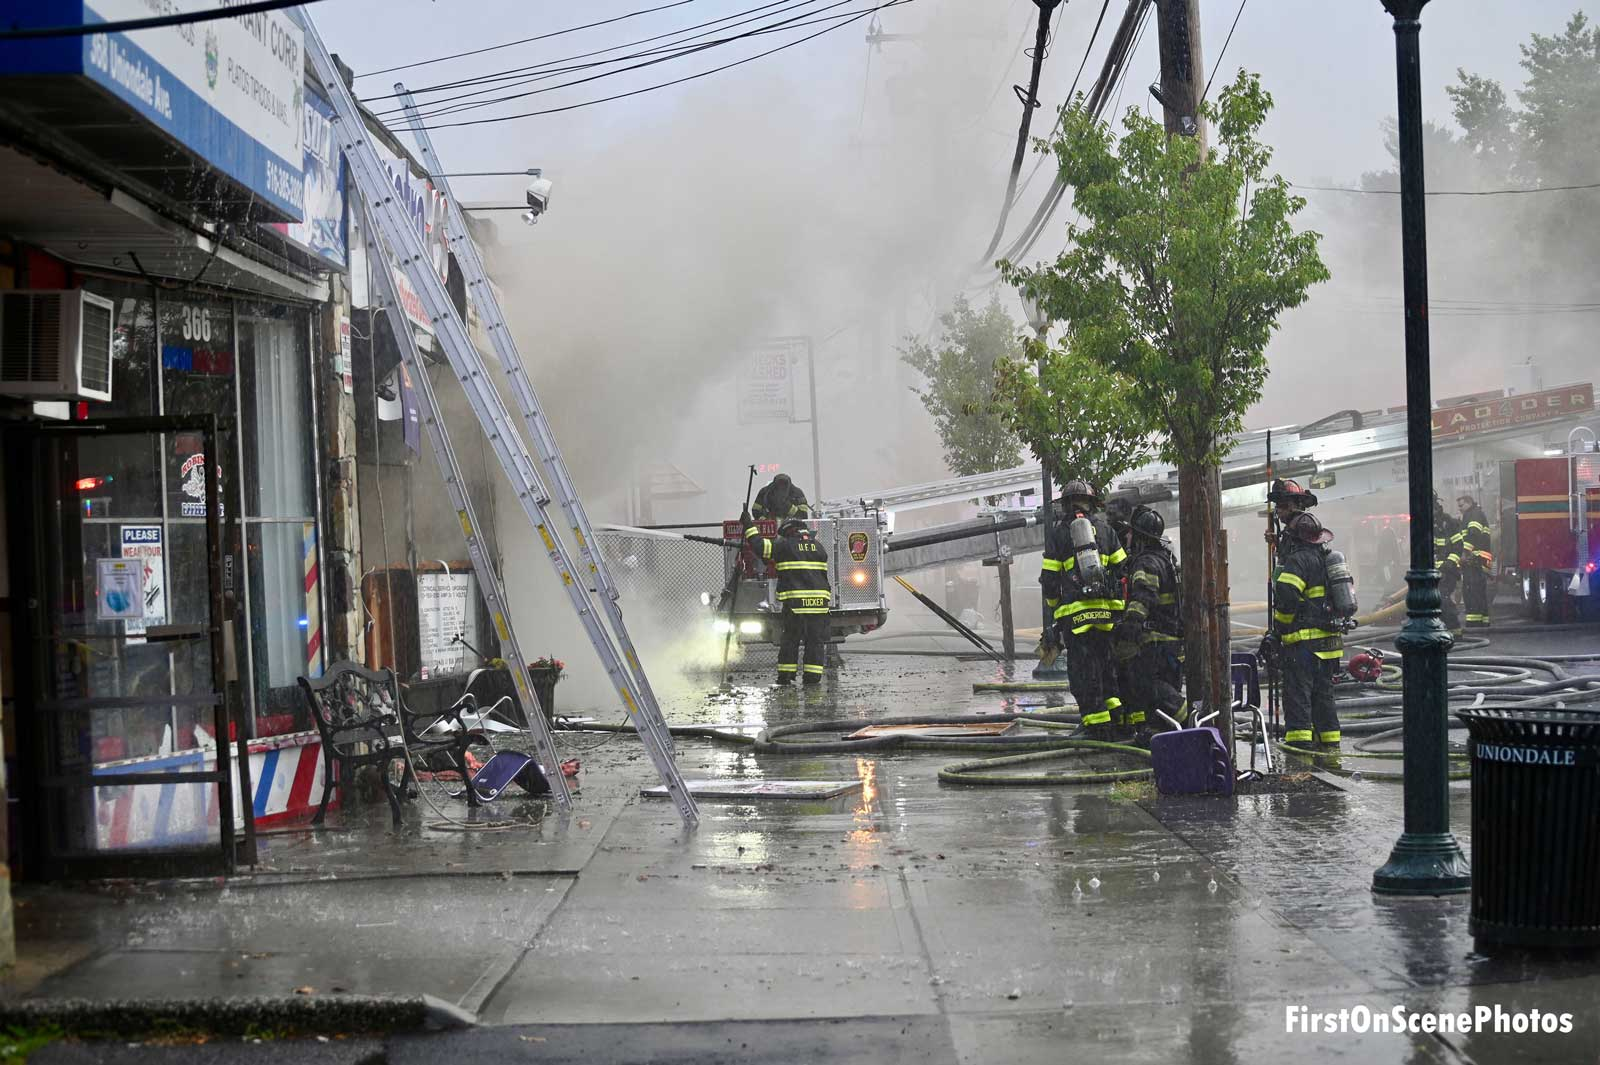 Ladders and firefighters outside a commercial occupancy in Uniondale